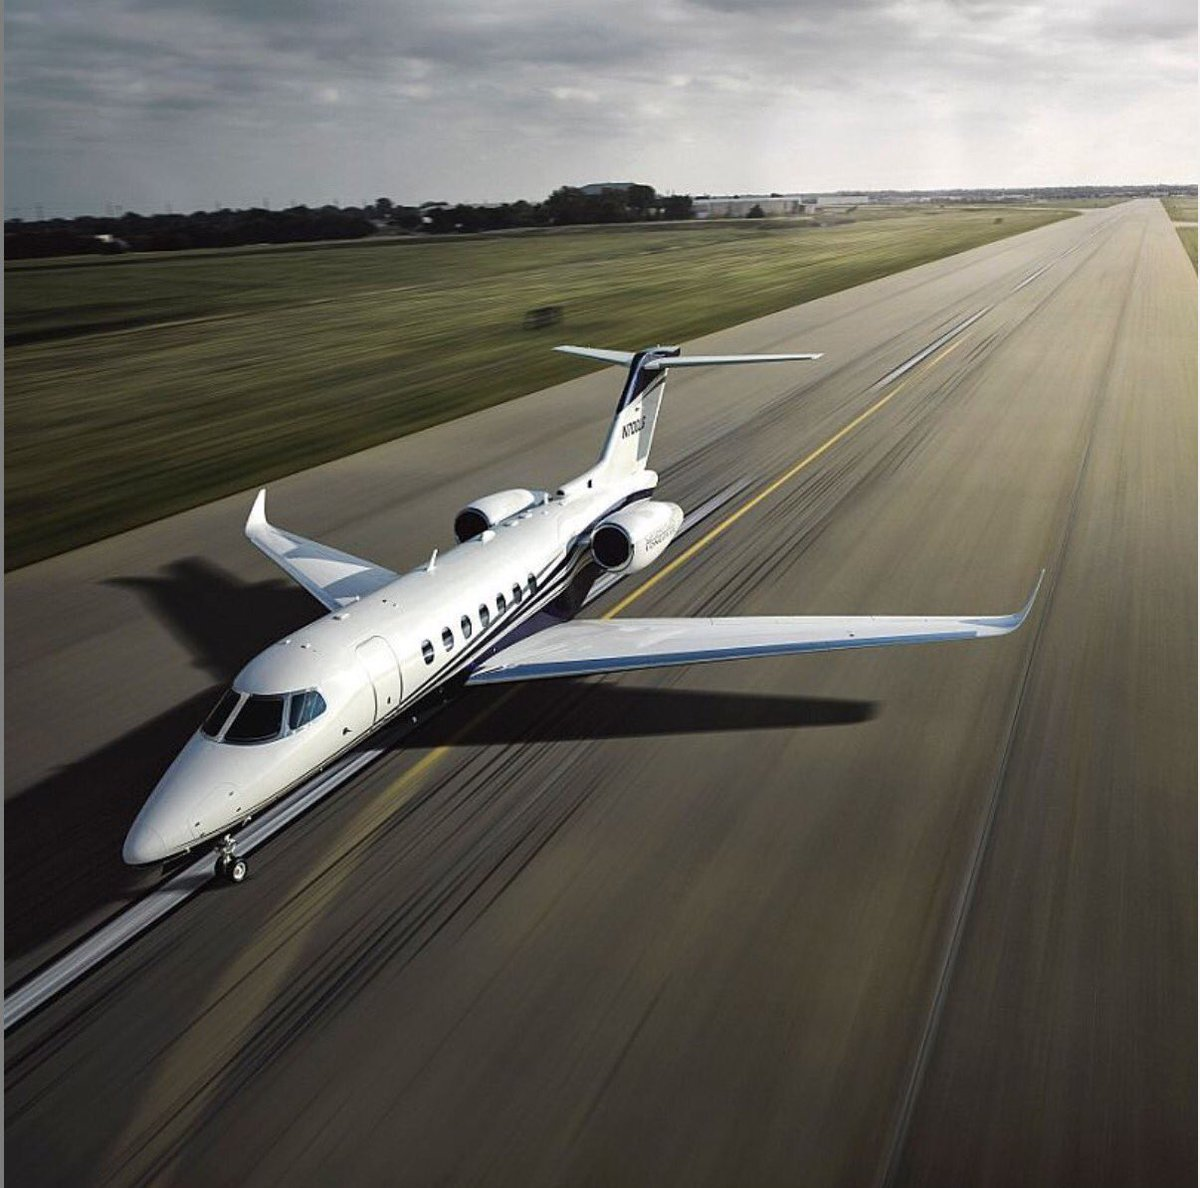 A super-midsize jet with exceptional performance, the @Cessna Citation Longitude flies 8 passengers in #VIP comfort! Planning for a private trip? Reach out to me to travel in absolute comfort on your dream private jet: request@baroqueaviation.com  #privatejet #bizjet https://t.co/xc4eG55AJT